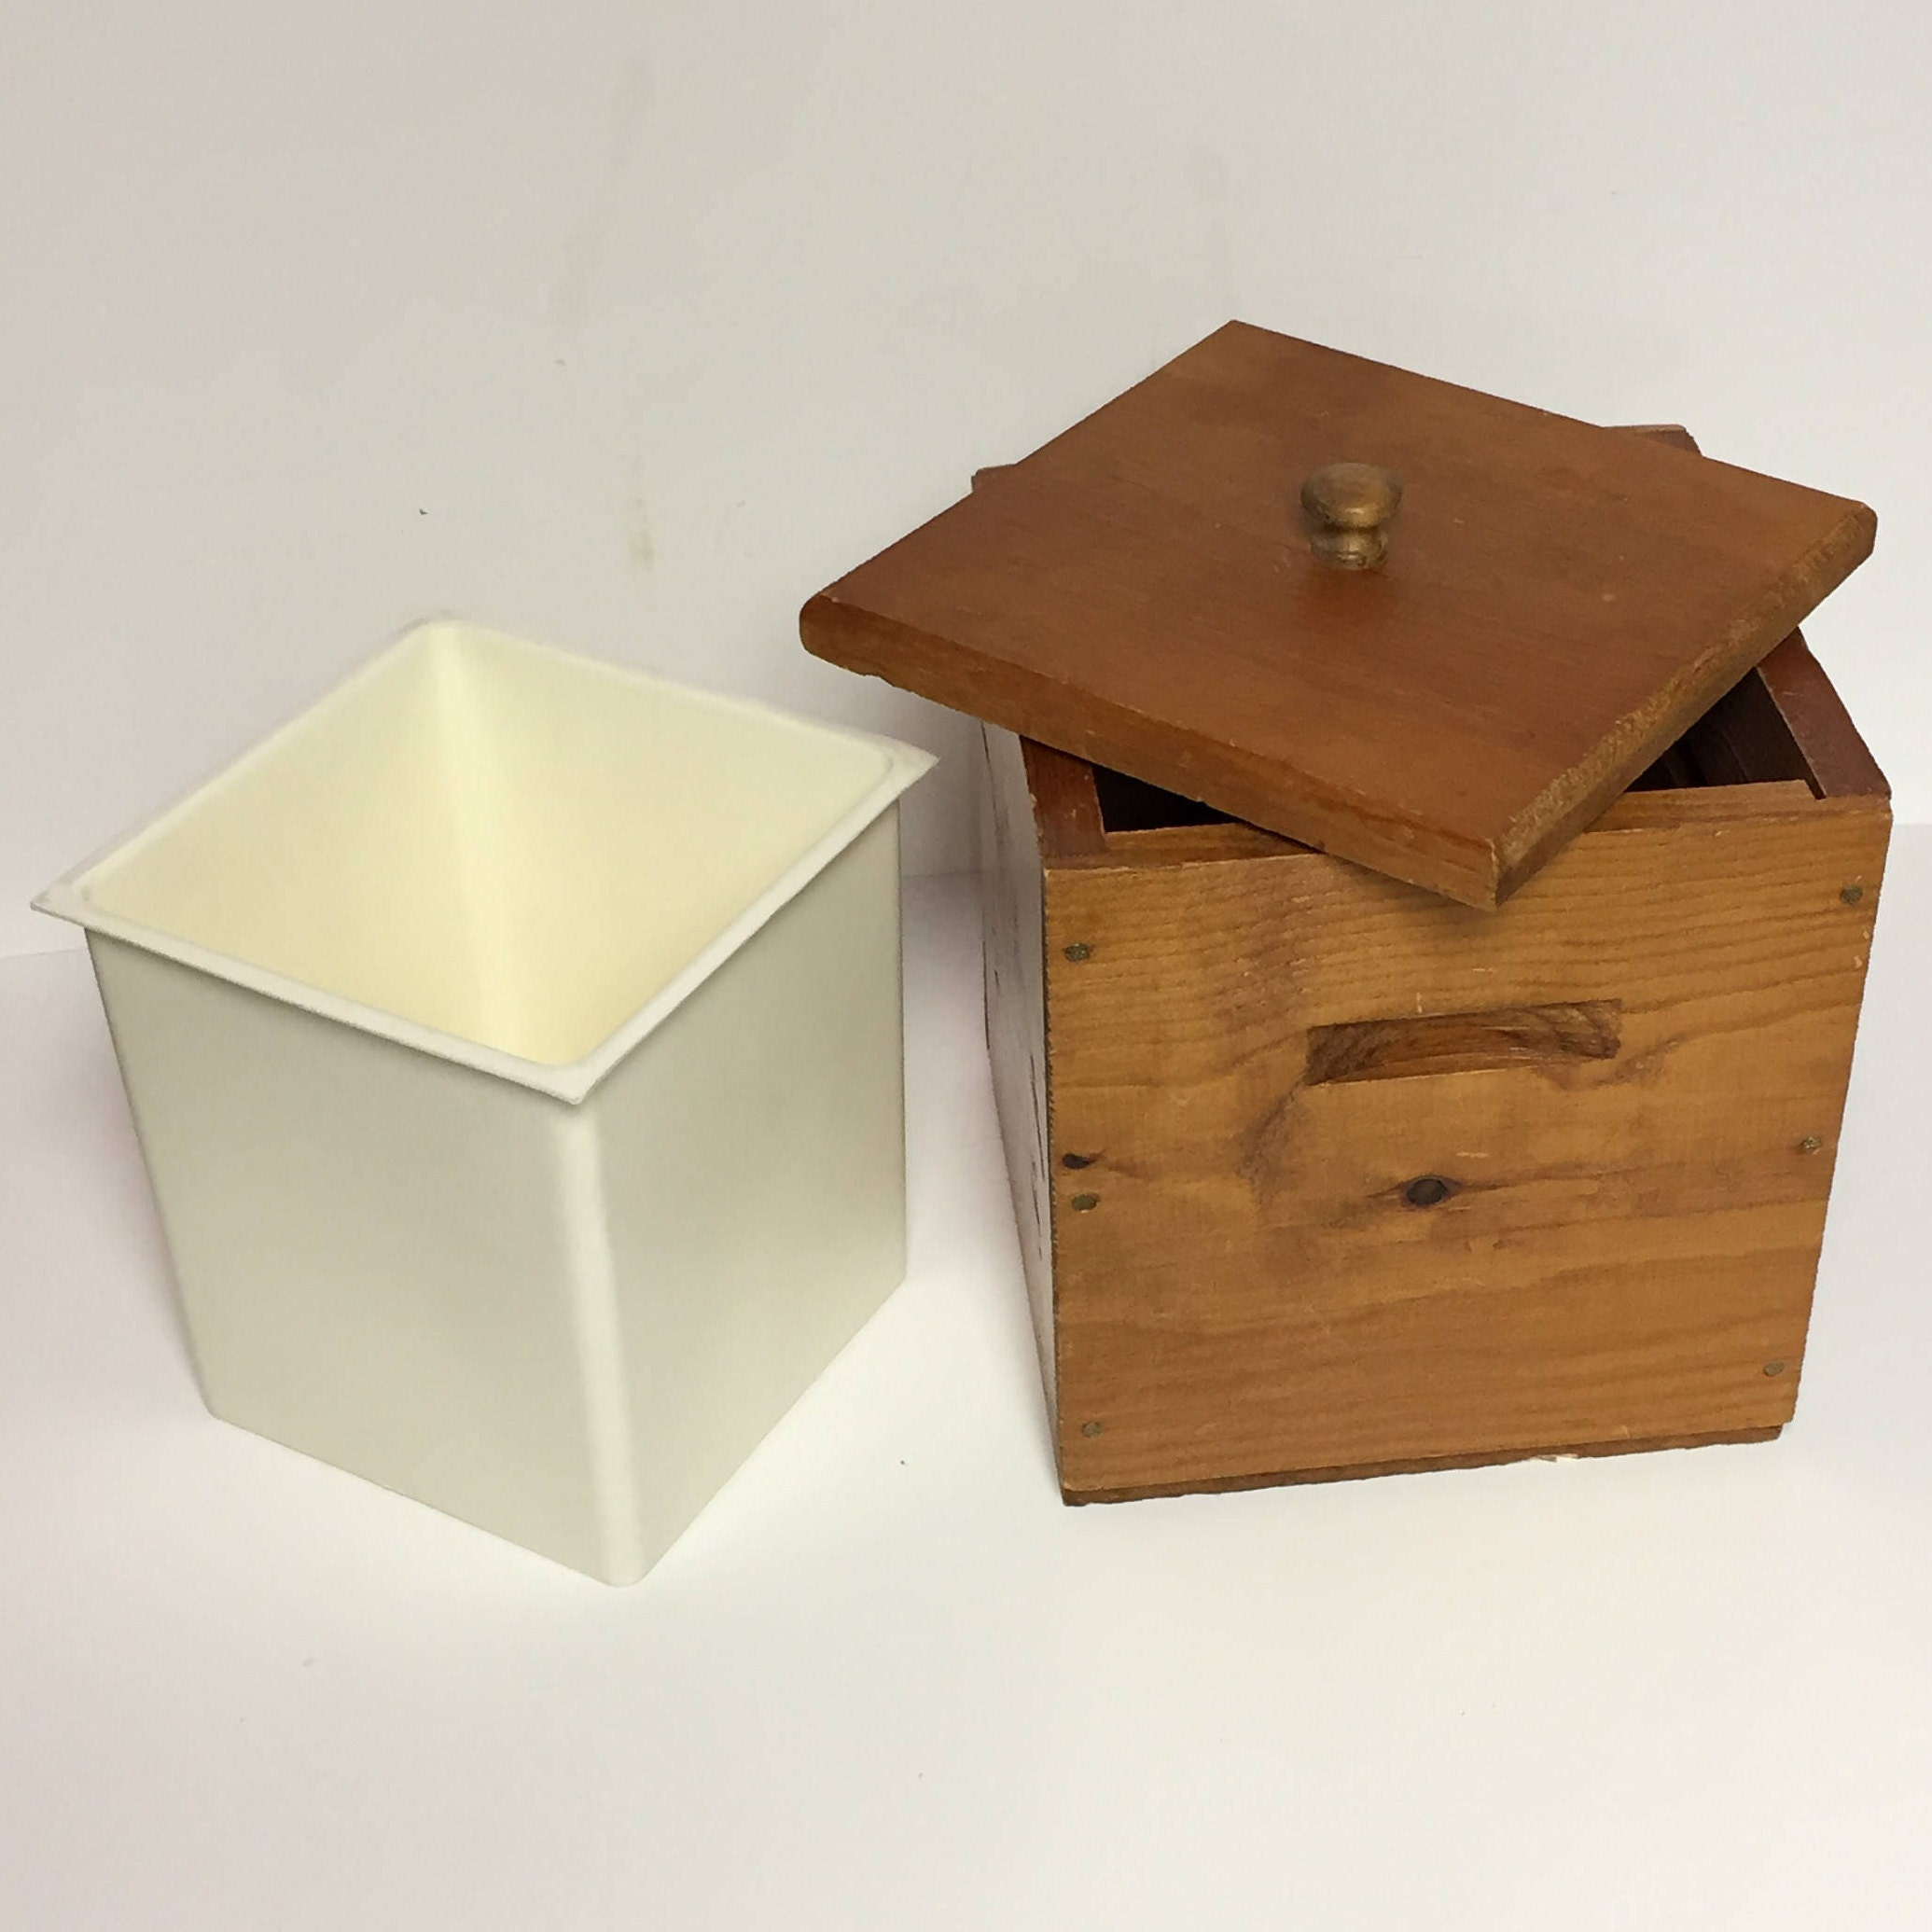 Vintage Wood and Plastic Anheuser Busch Ice Bucket, Beer Cooler